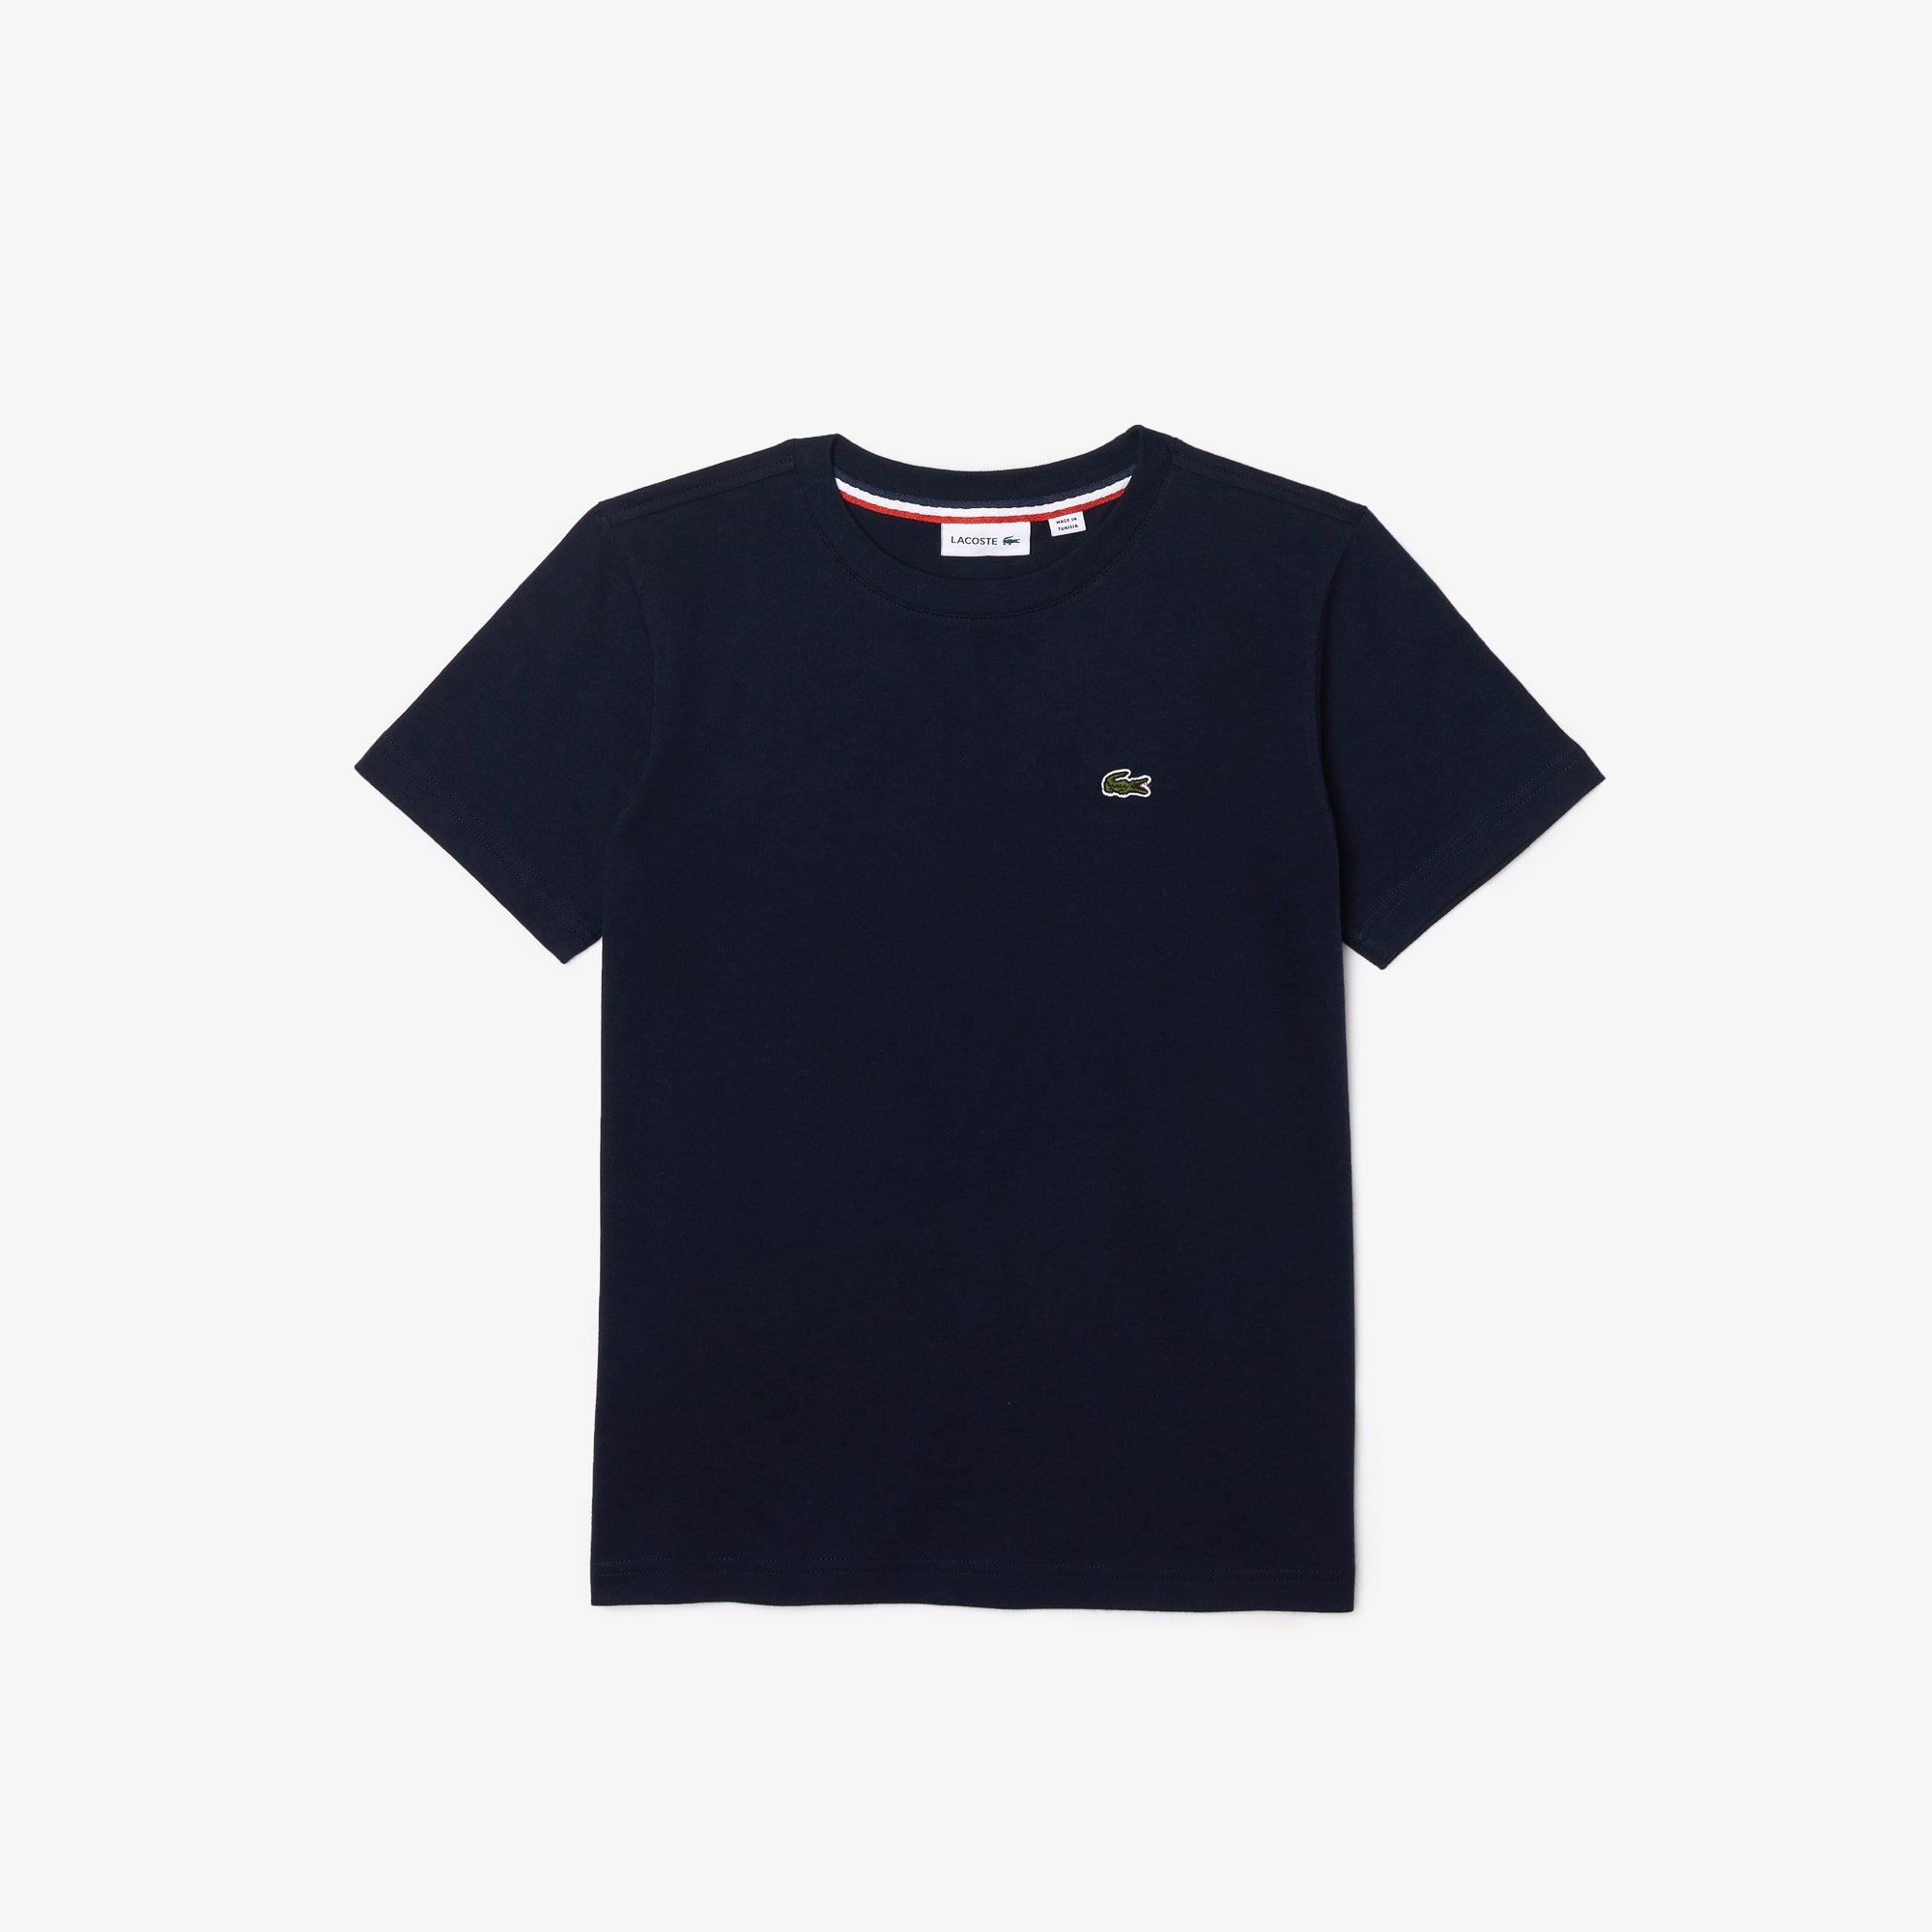 Clothing Shoes Collection Kids Fashion Lacoste